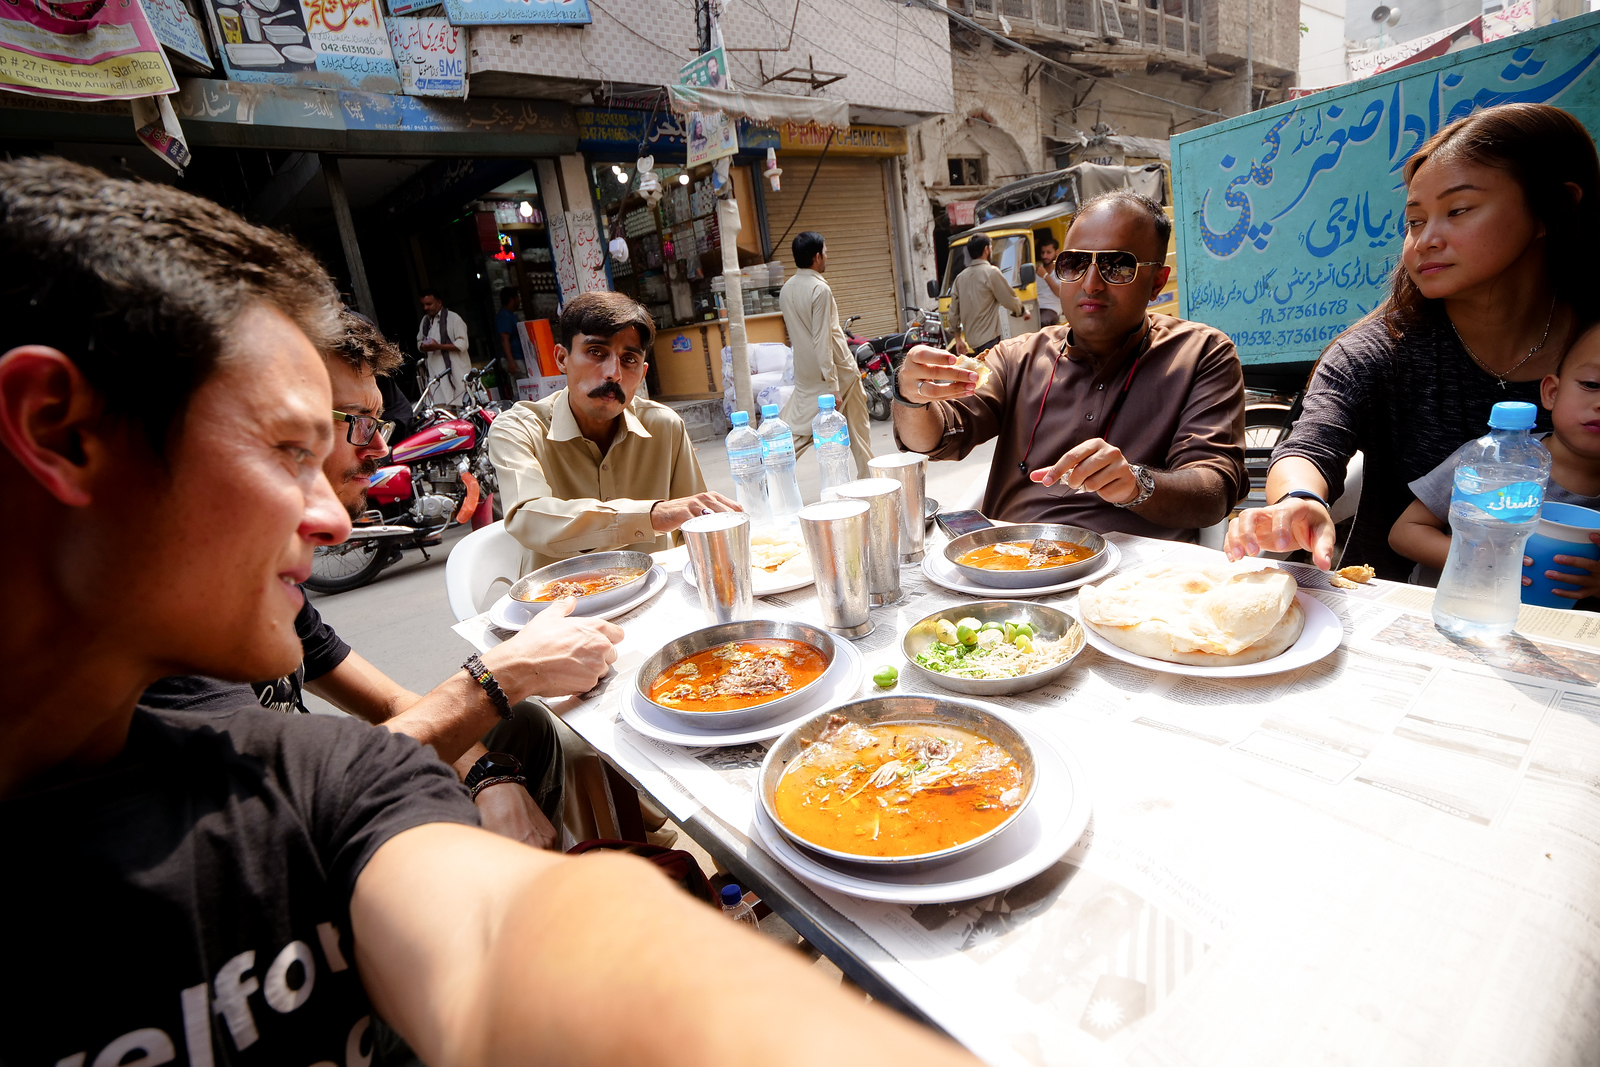 Eating Nihari on Stainless Steel tables in Lahore